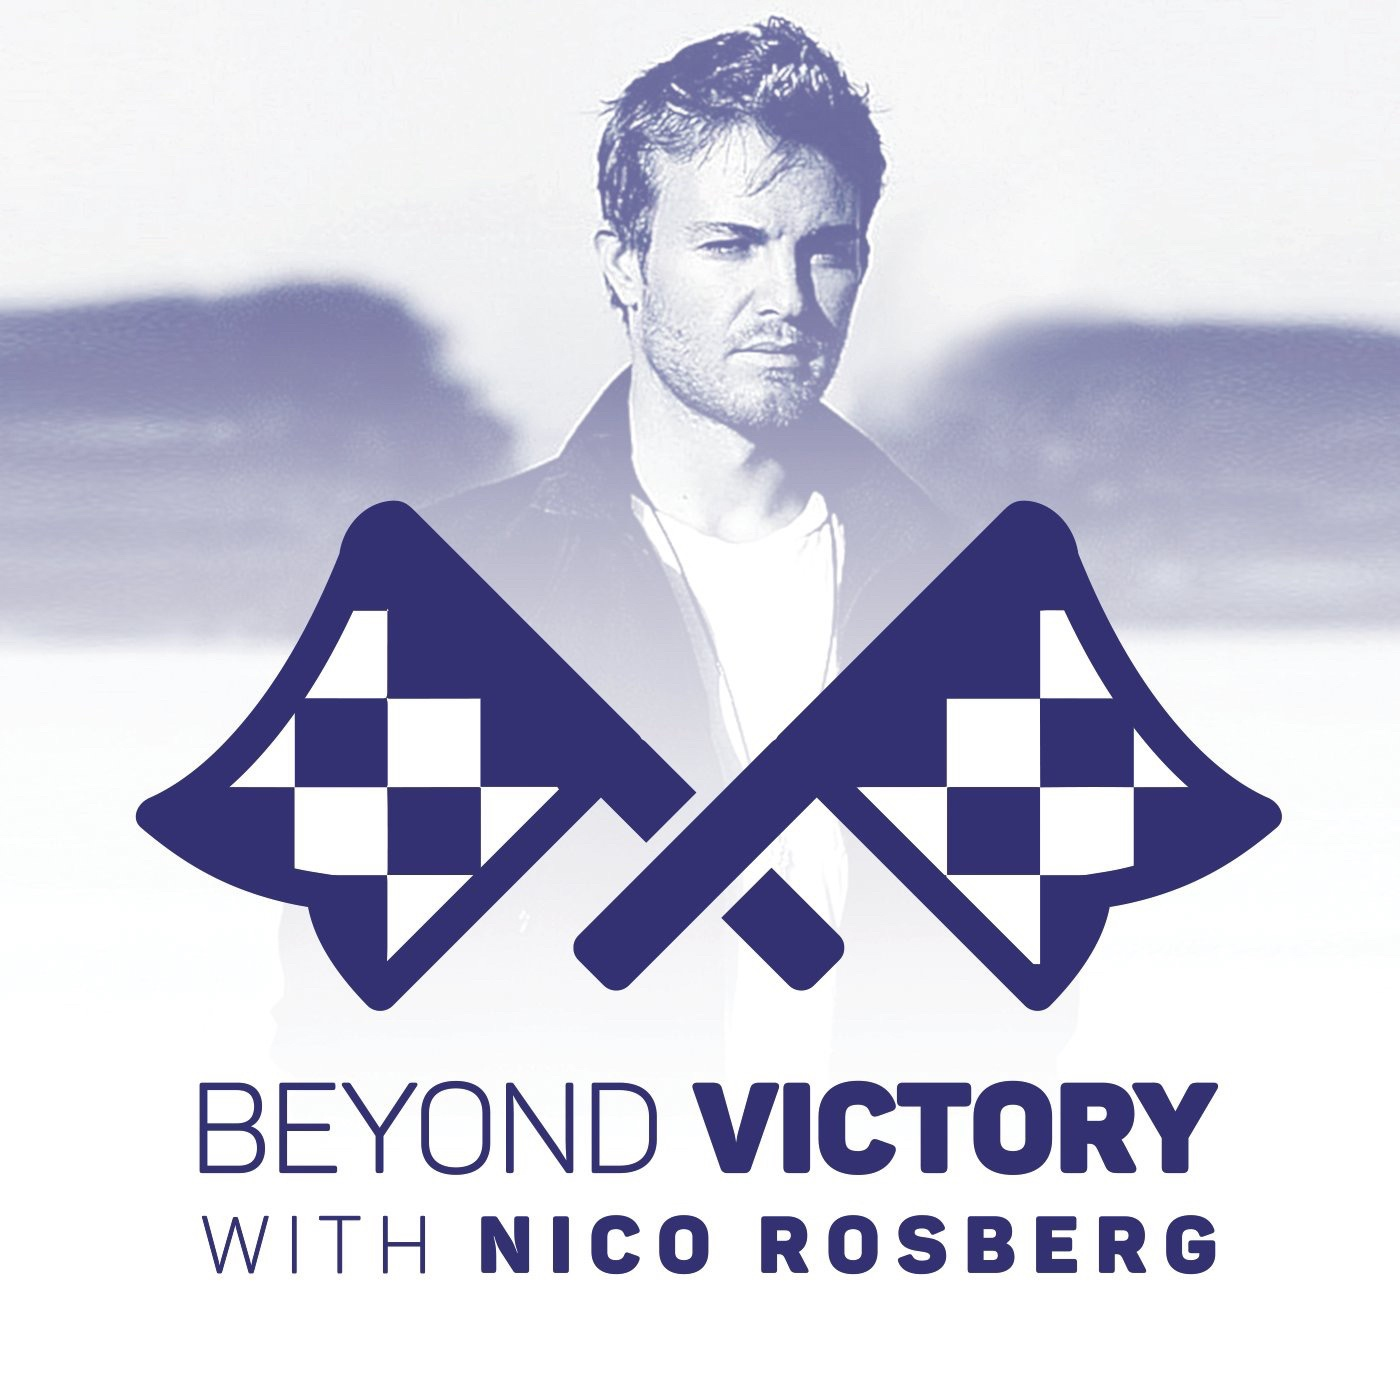 Beyond Victory with Nico Rosberg